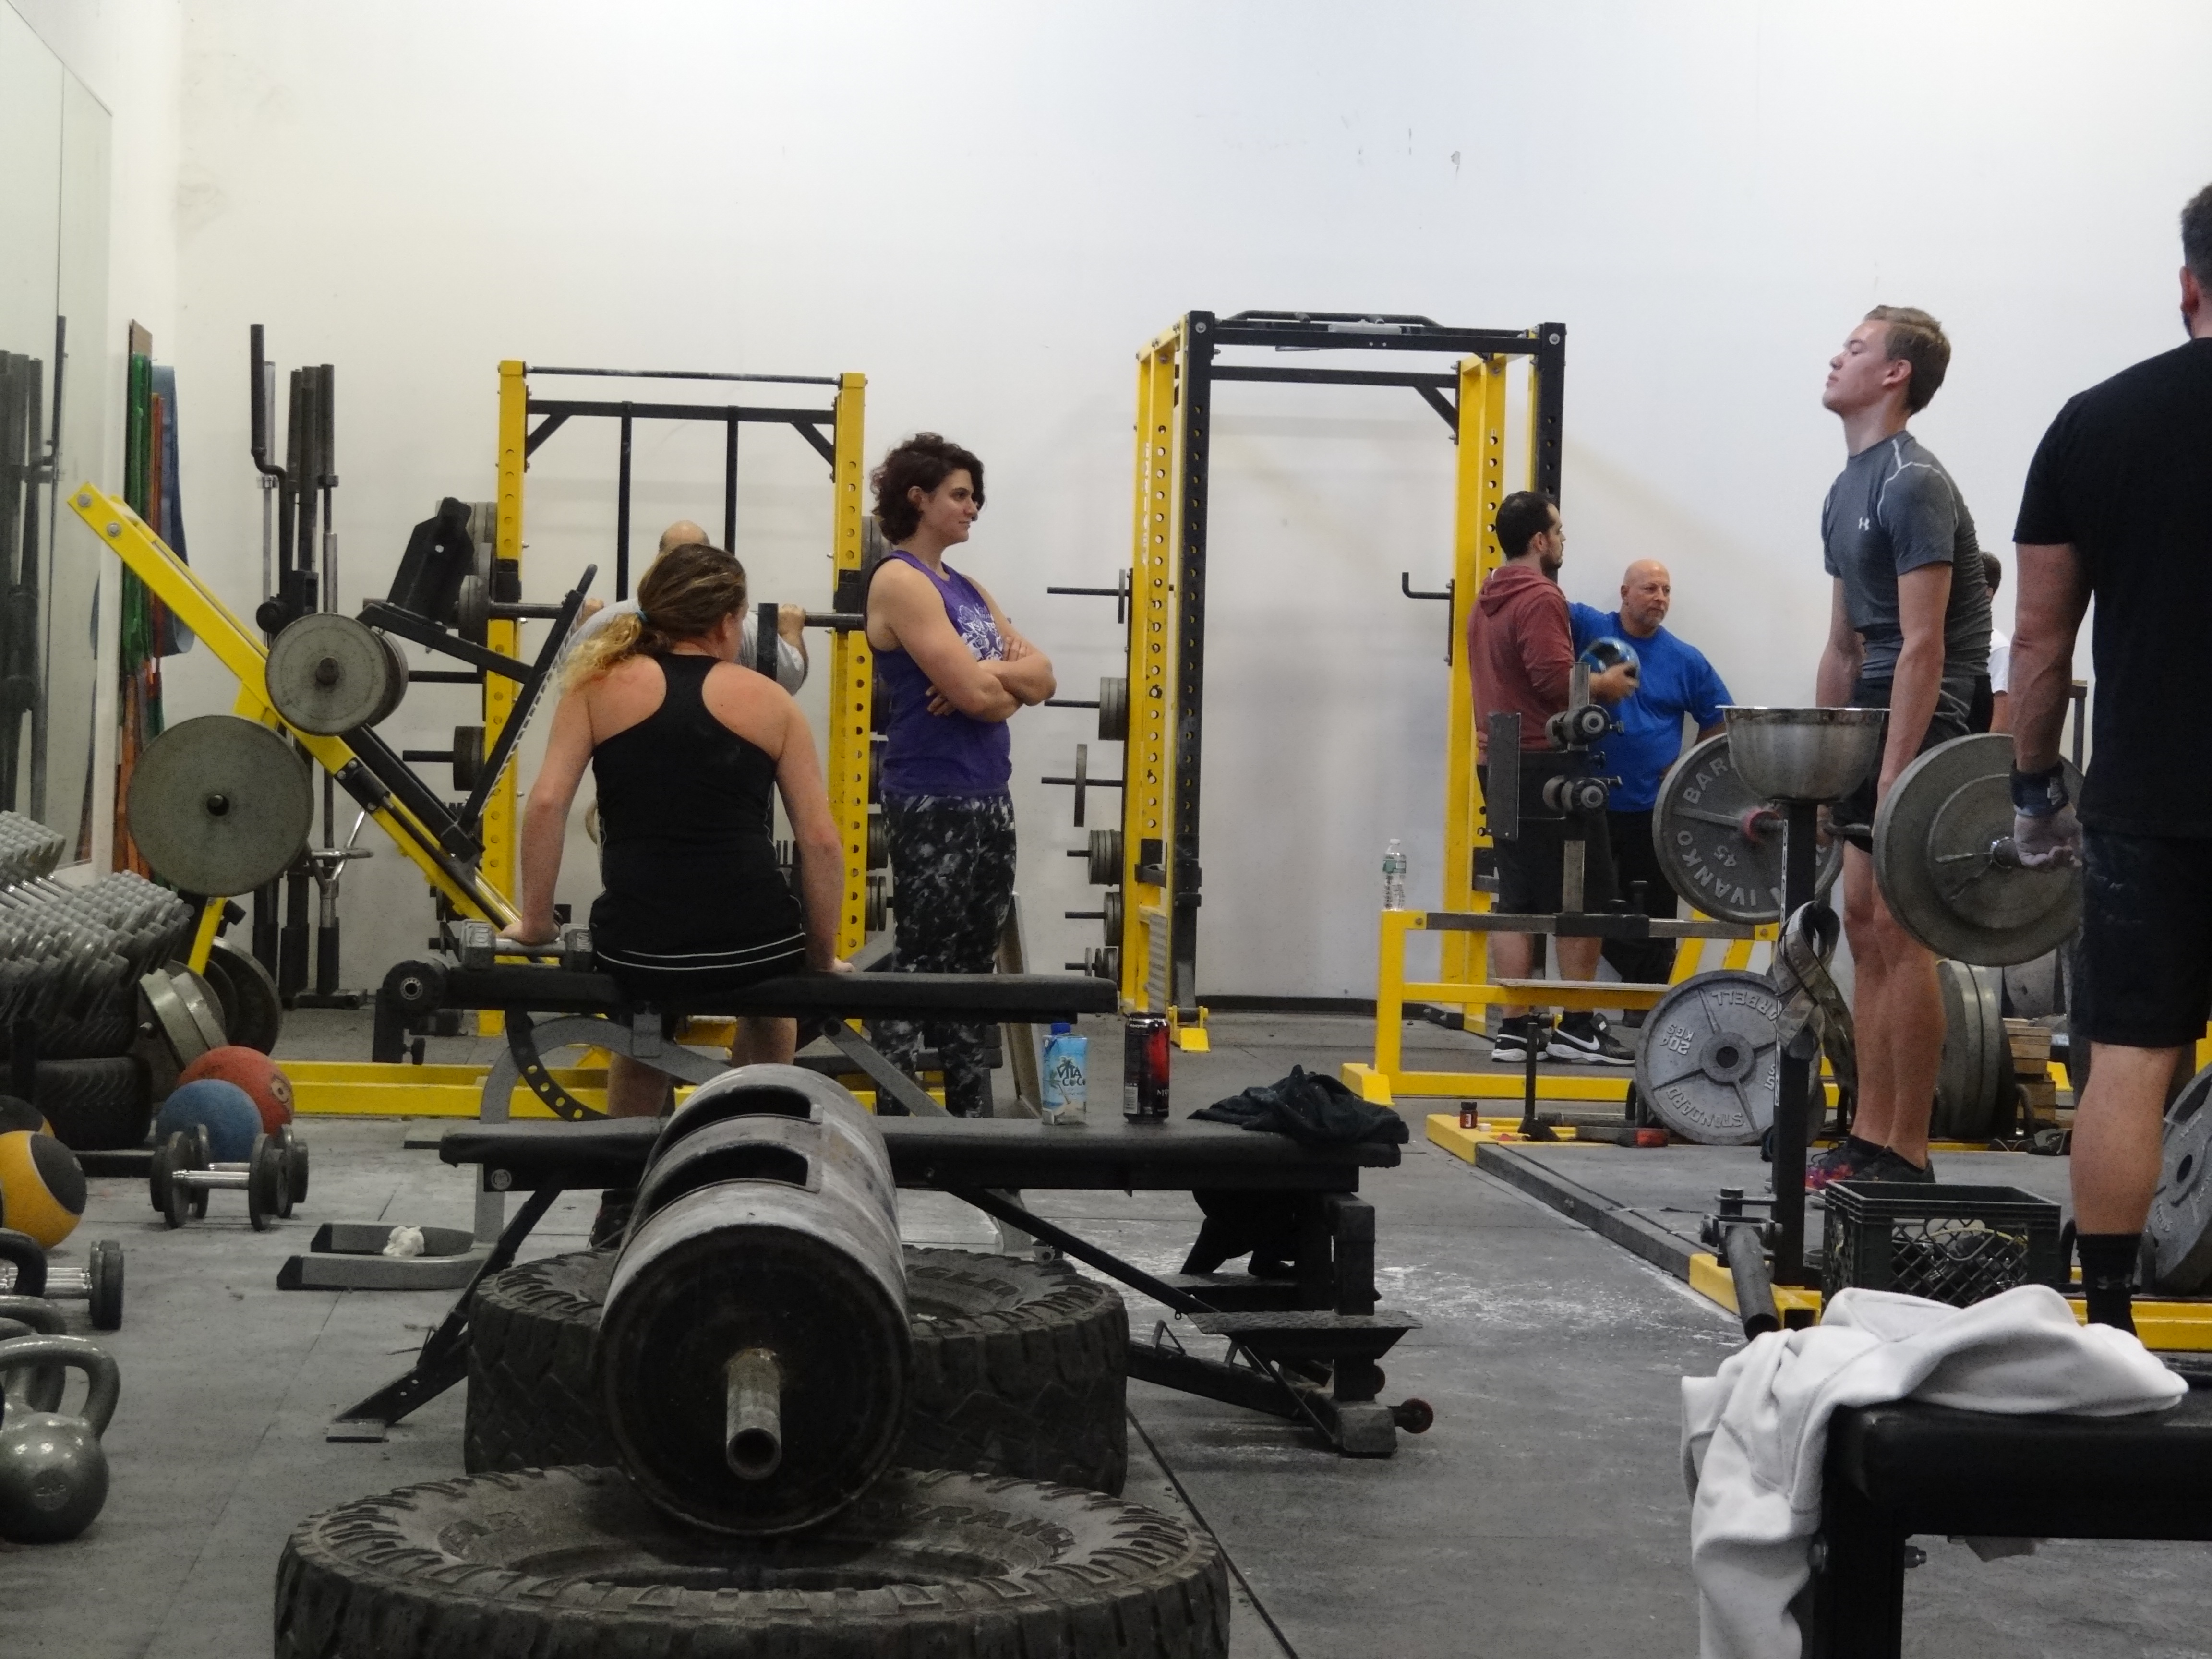 Granite Barbell Orange County NY gym Strongman-Strongwoman Saturday November 19, 2016